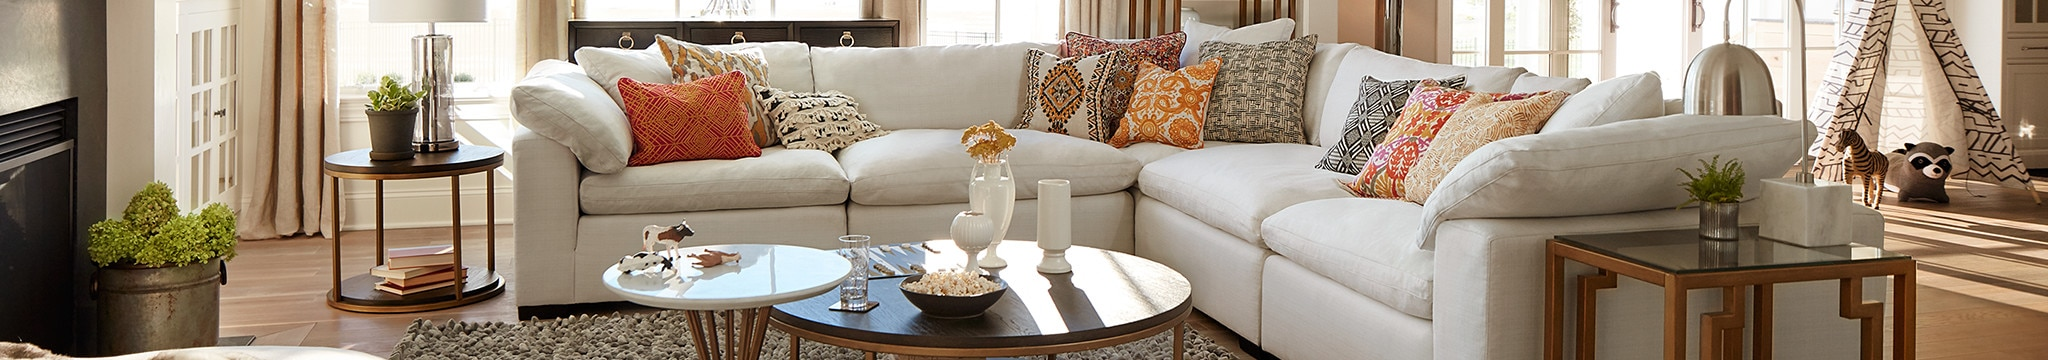 tables in living room small contemporary decorating ideas end value city